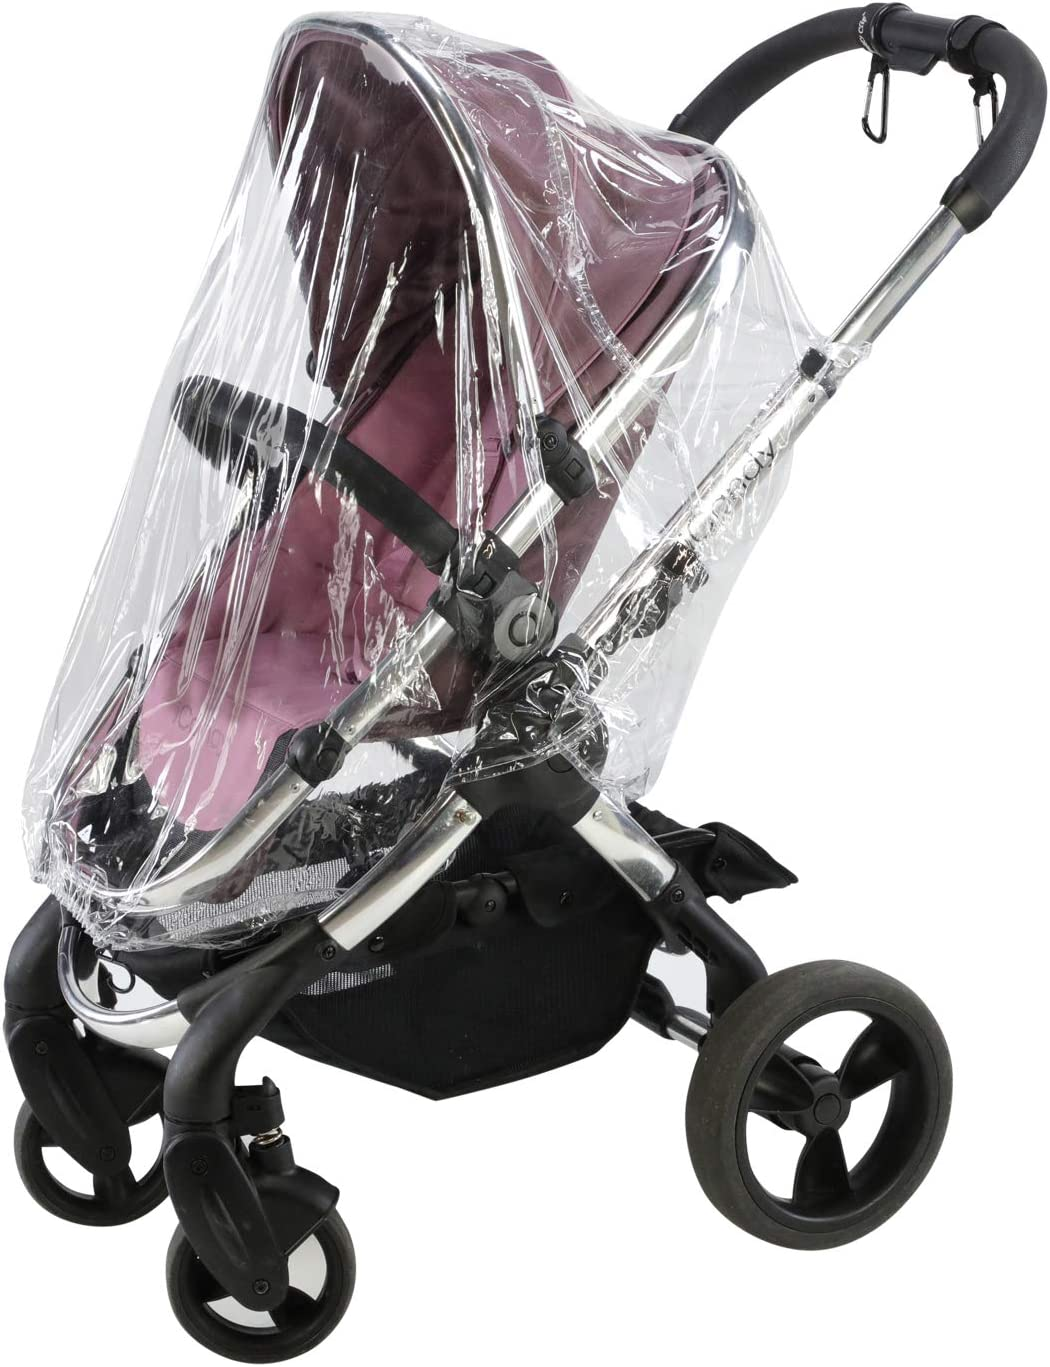 FYLO Pushchair Raincover Compatible with Mamas /& Papas Armadillo City 2